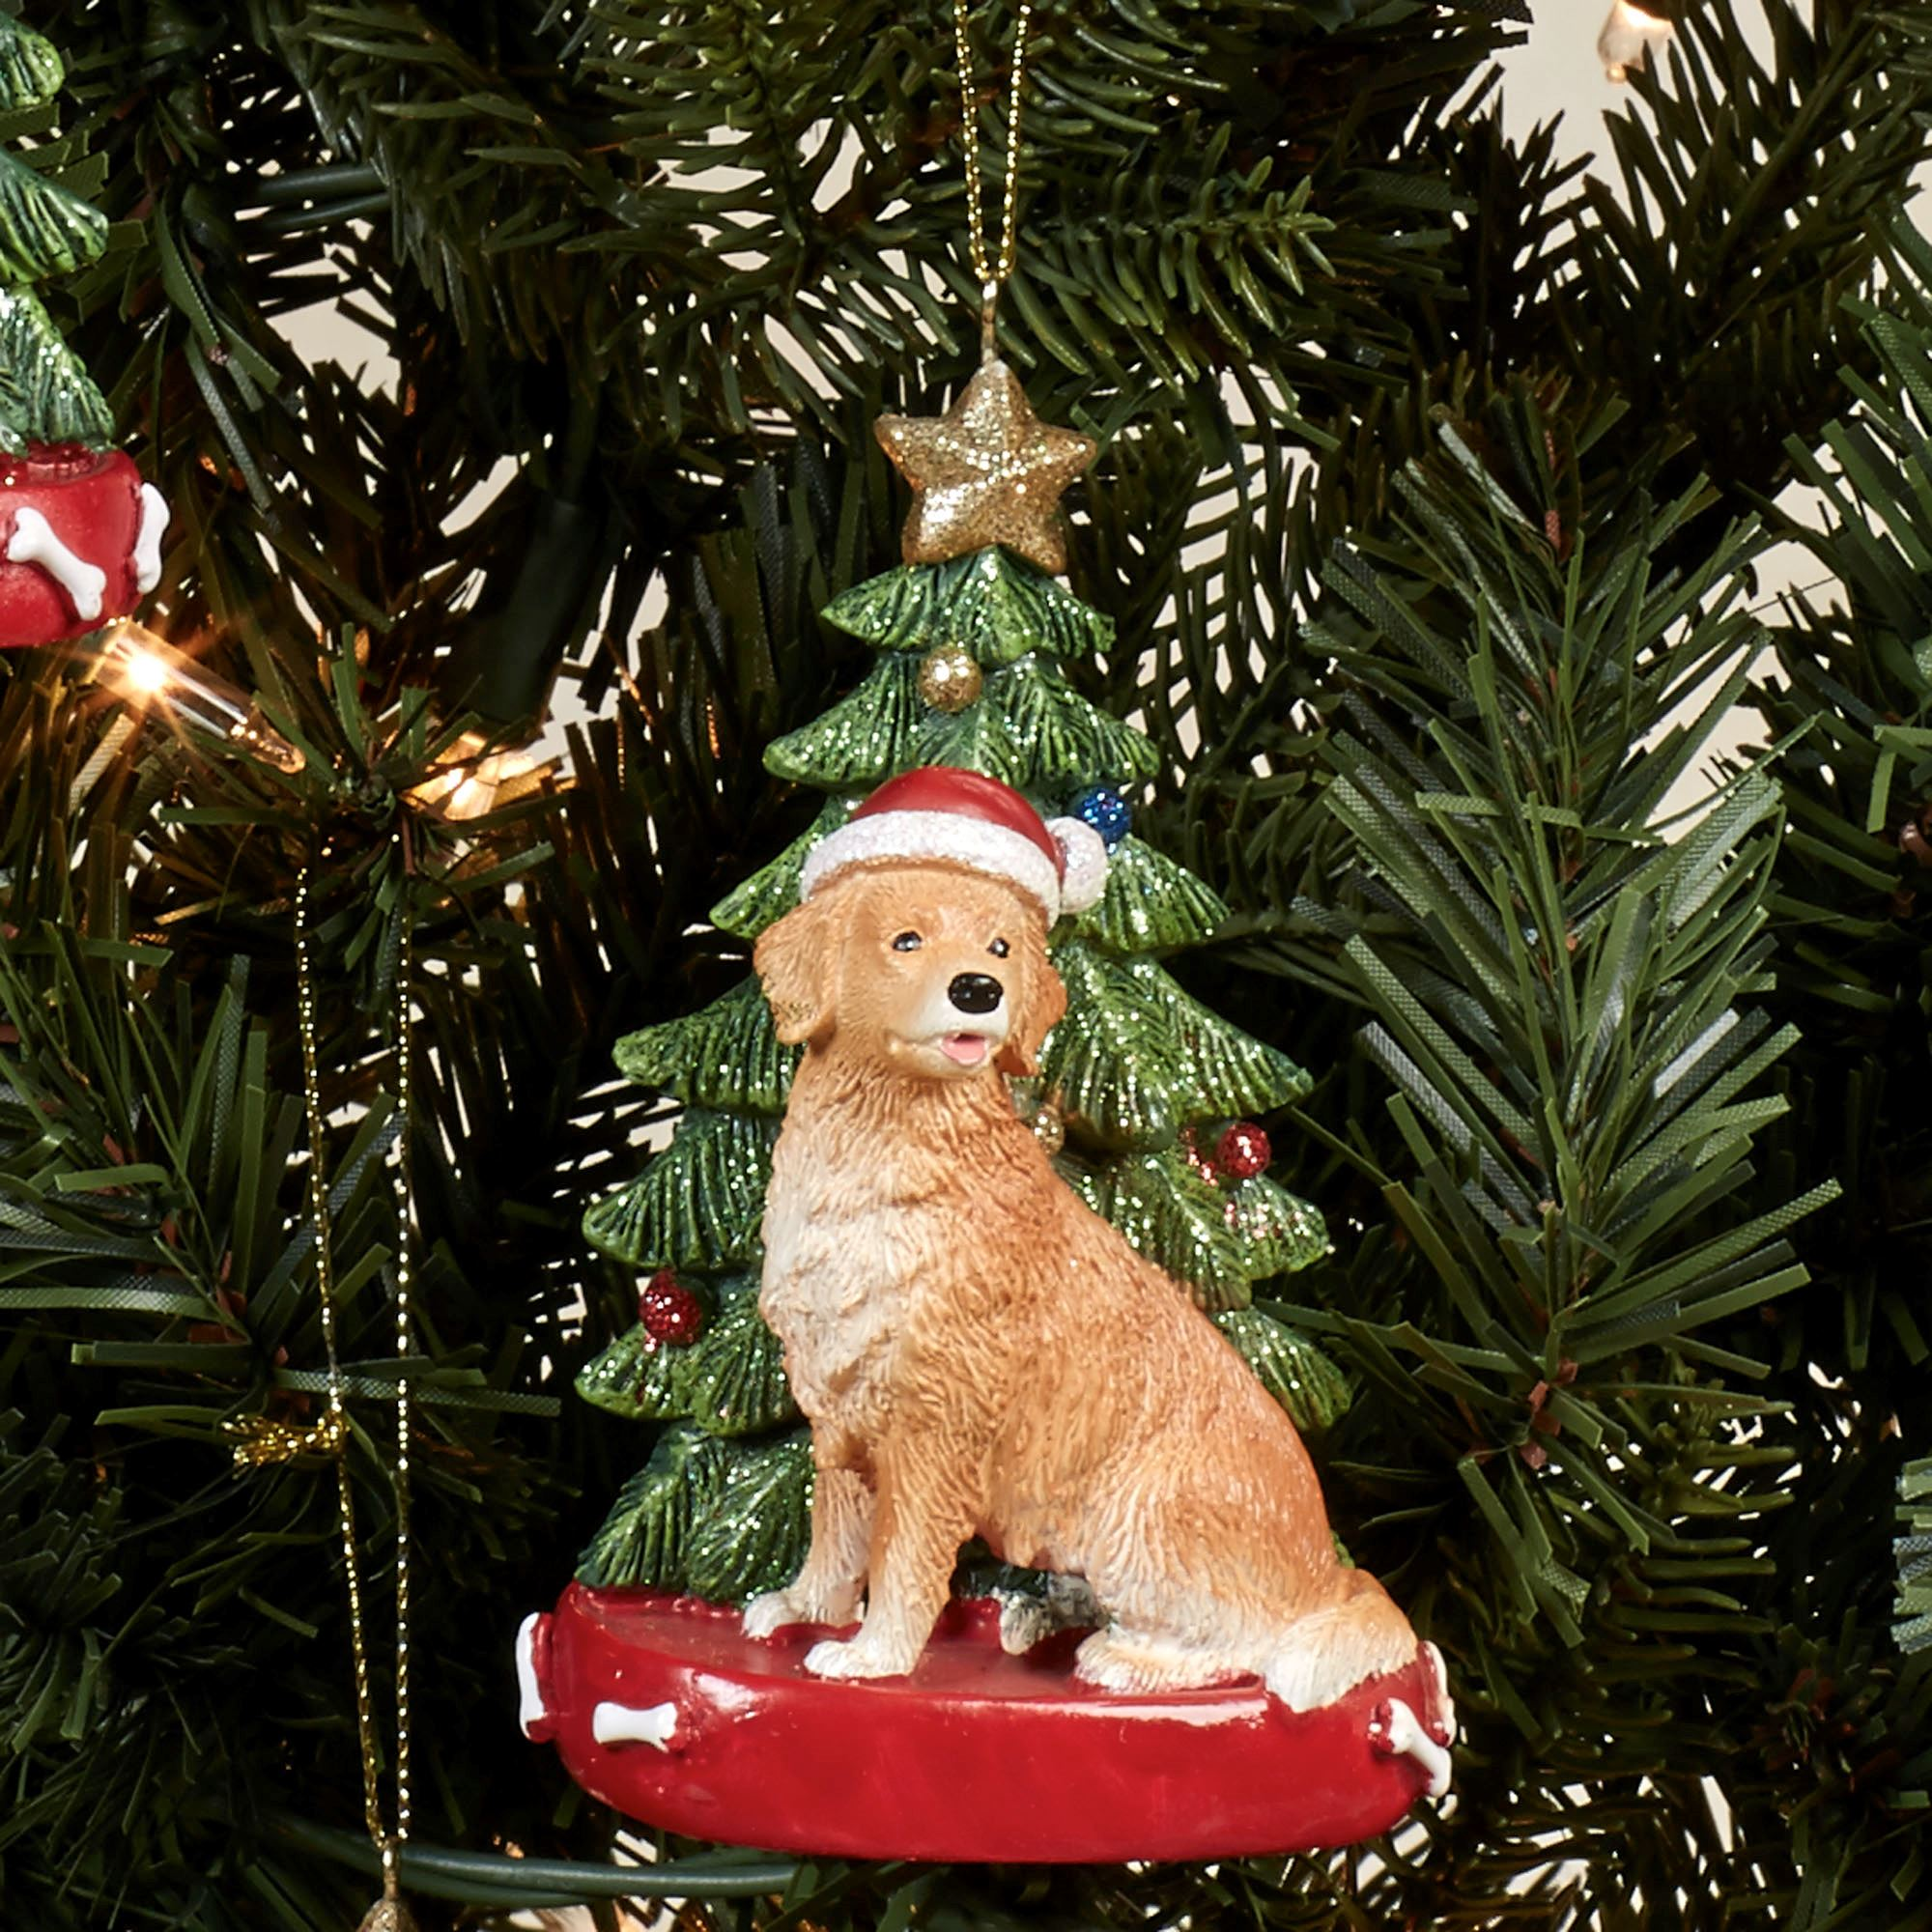 Golden Retriever Dog Christmas Ornament